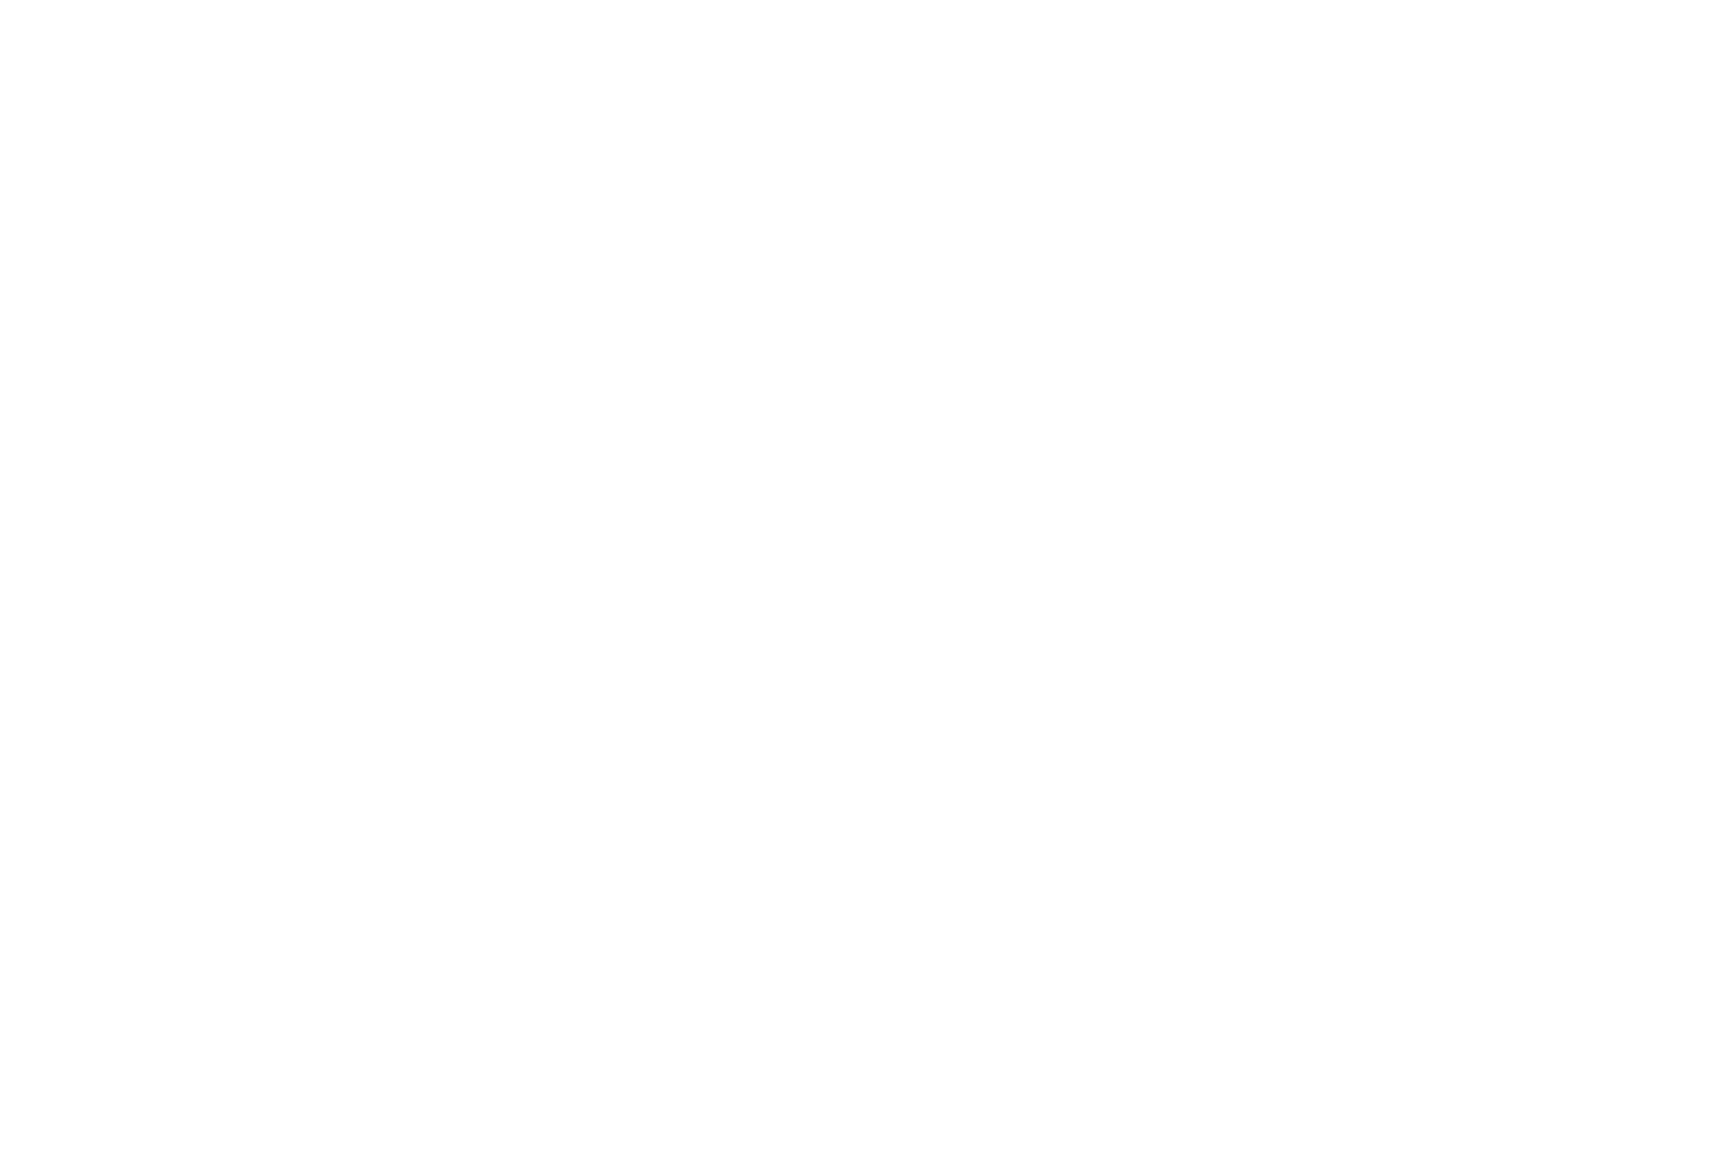 WINNER - Festigious Los Angeles - Monthly Film Competition - 2020